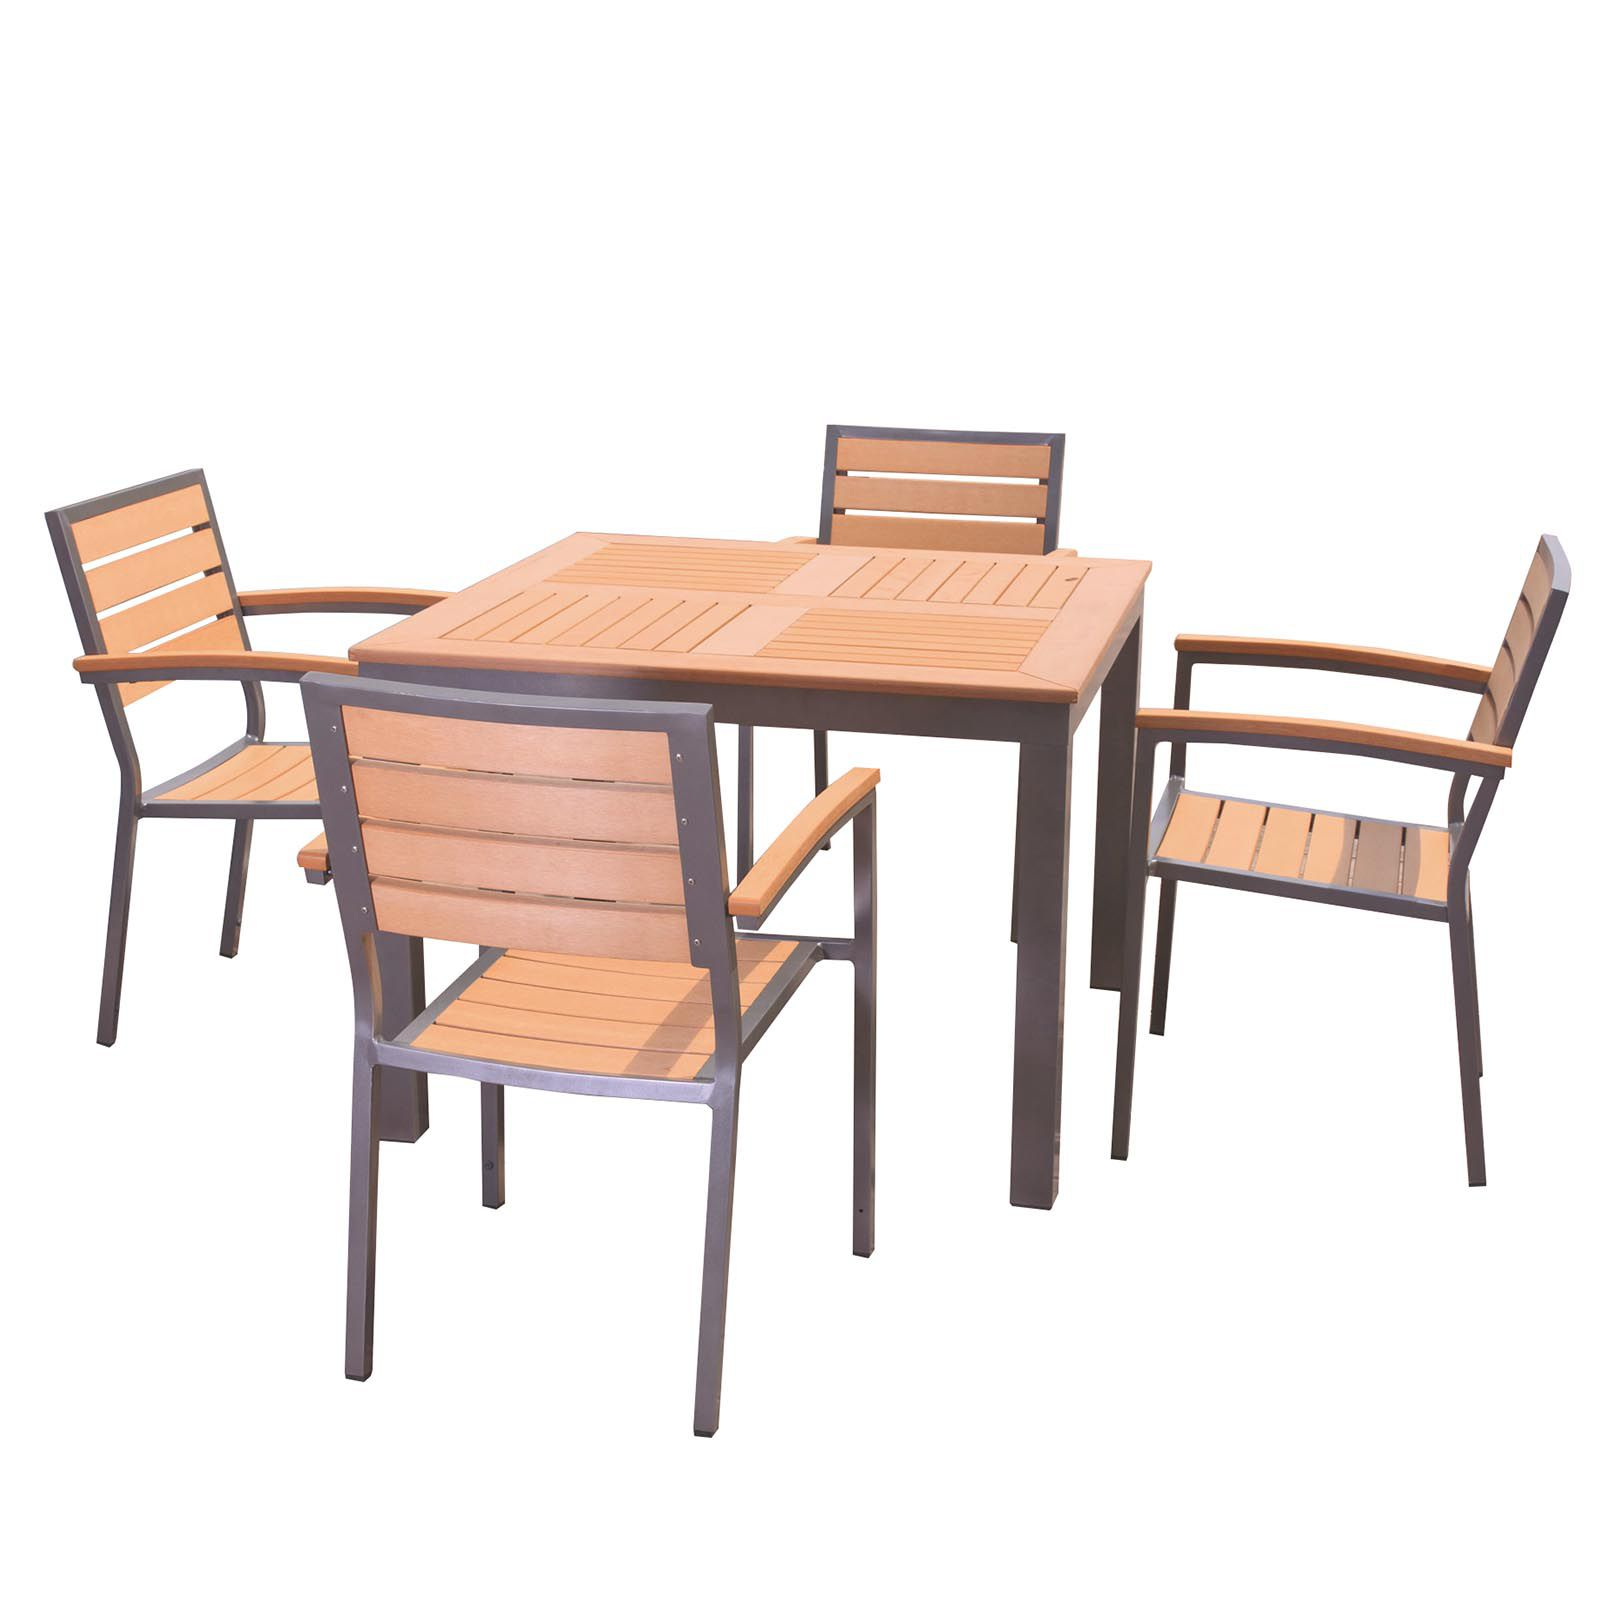 Buy cheap square bistro table compare sheds garden for Garden furniture deals